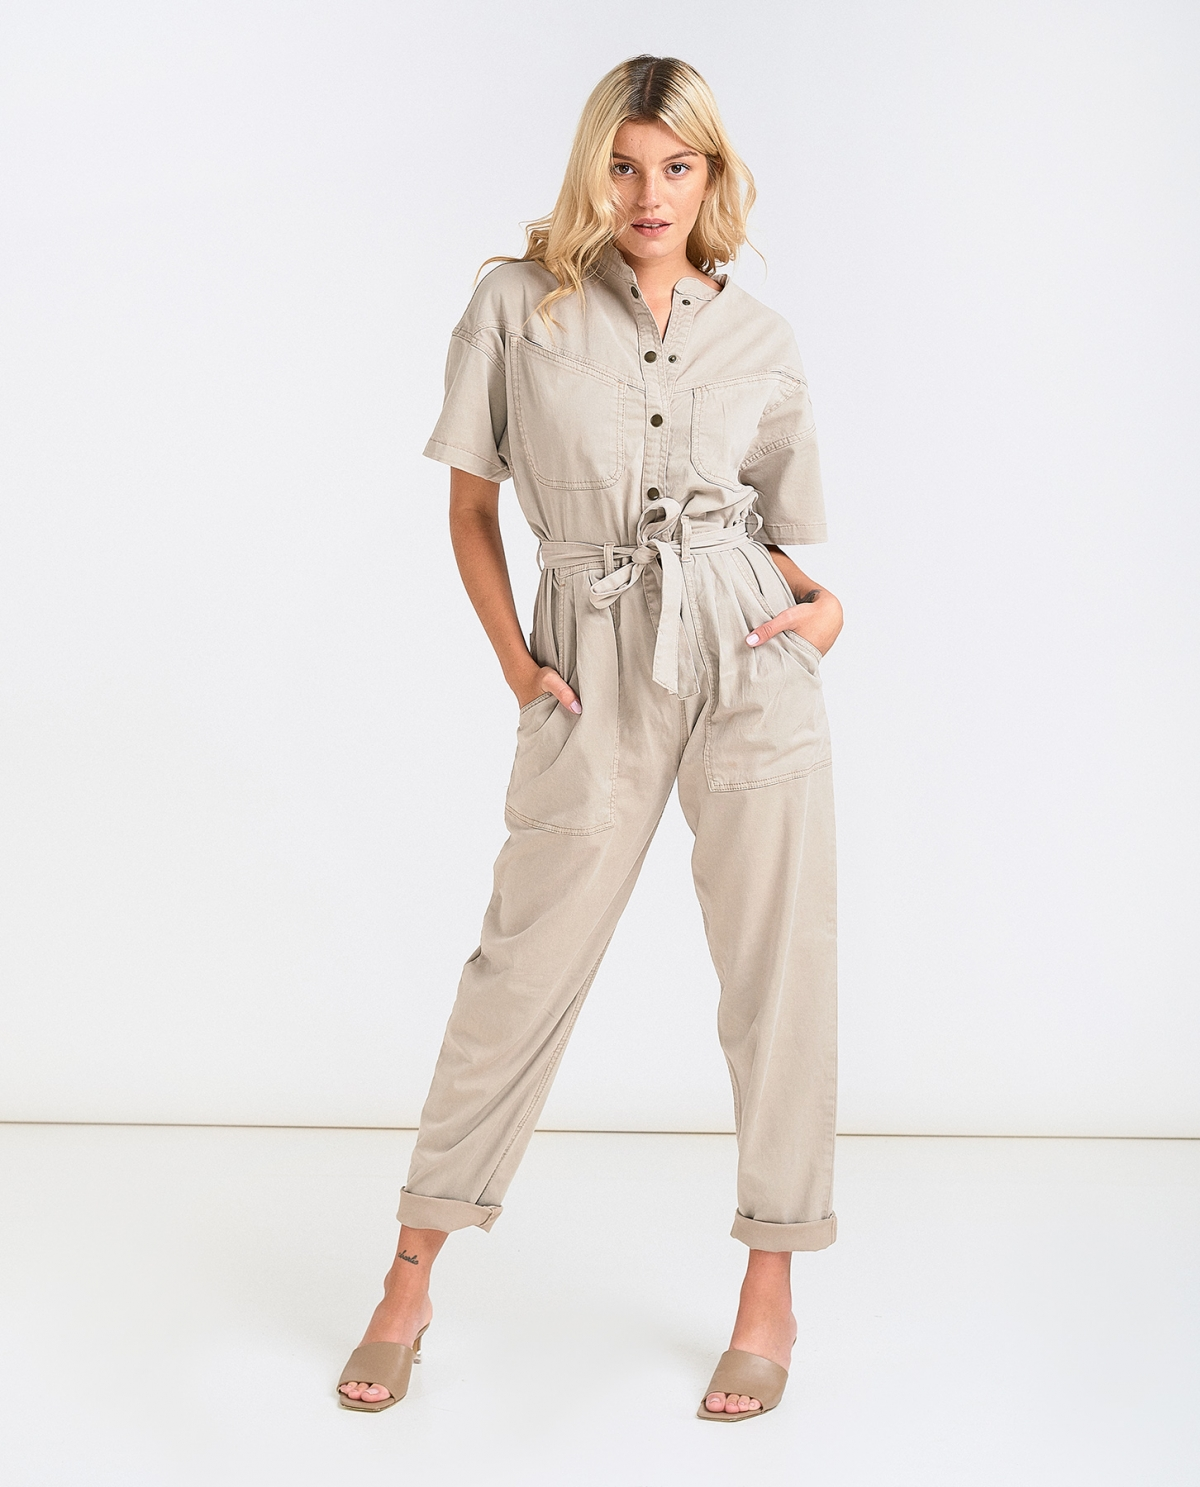 Frida Rainy Grey Jumpsuit